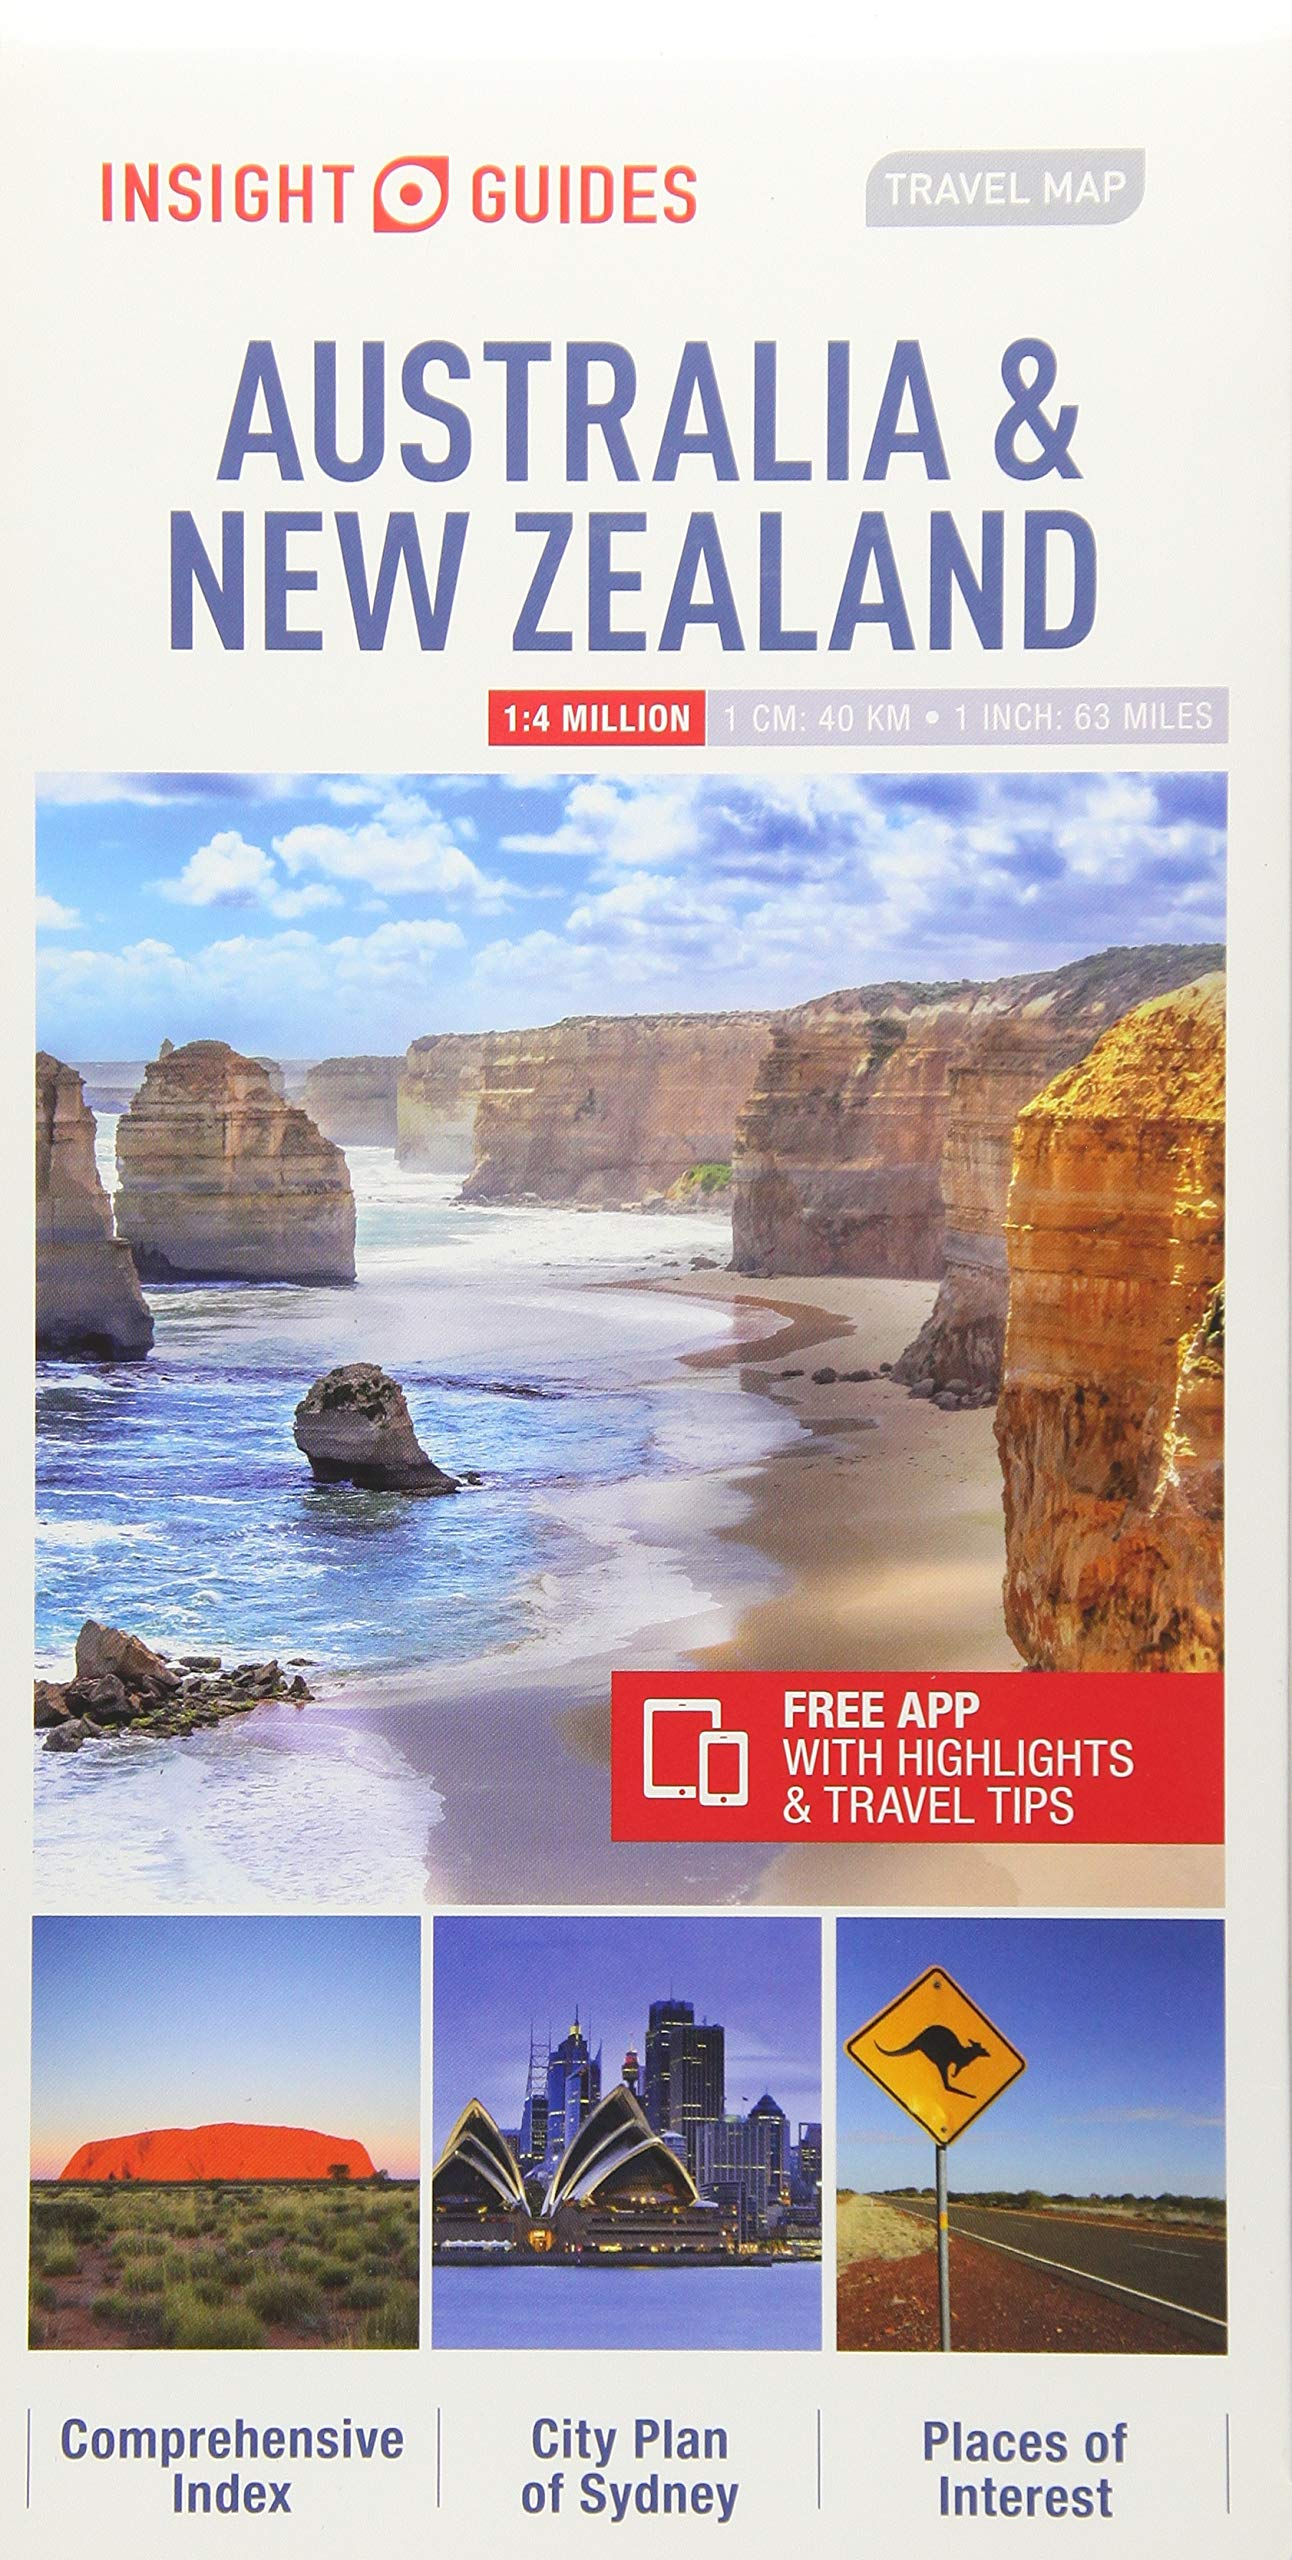 New zealand travel guide. Helping dreamers do.